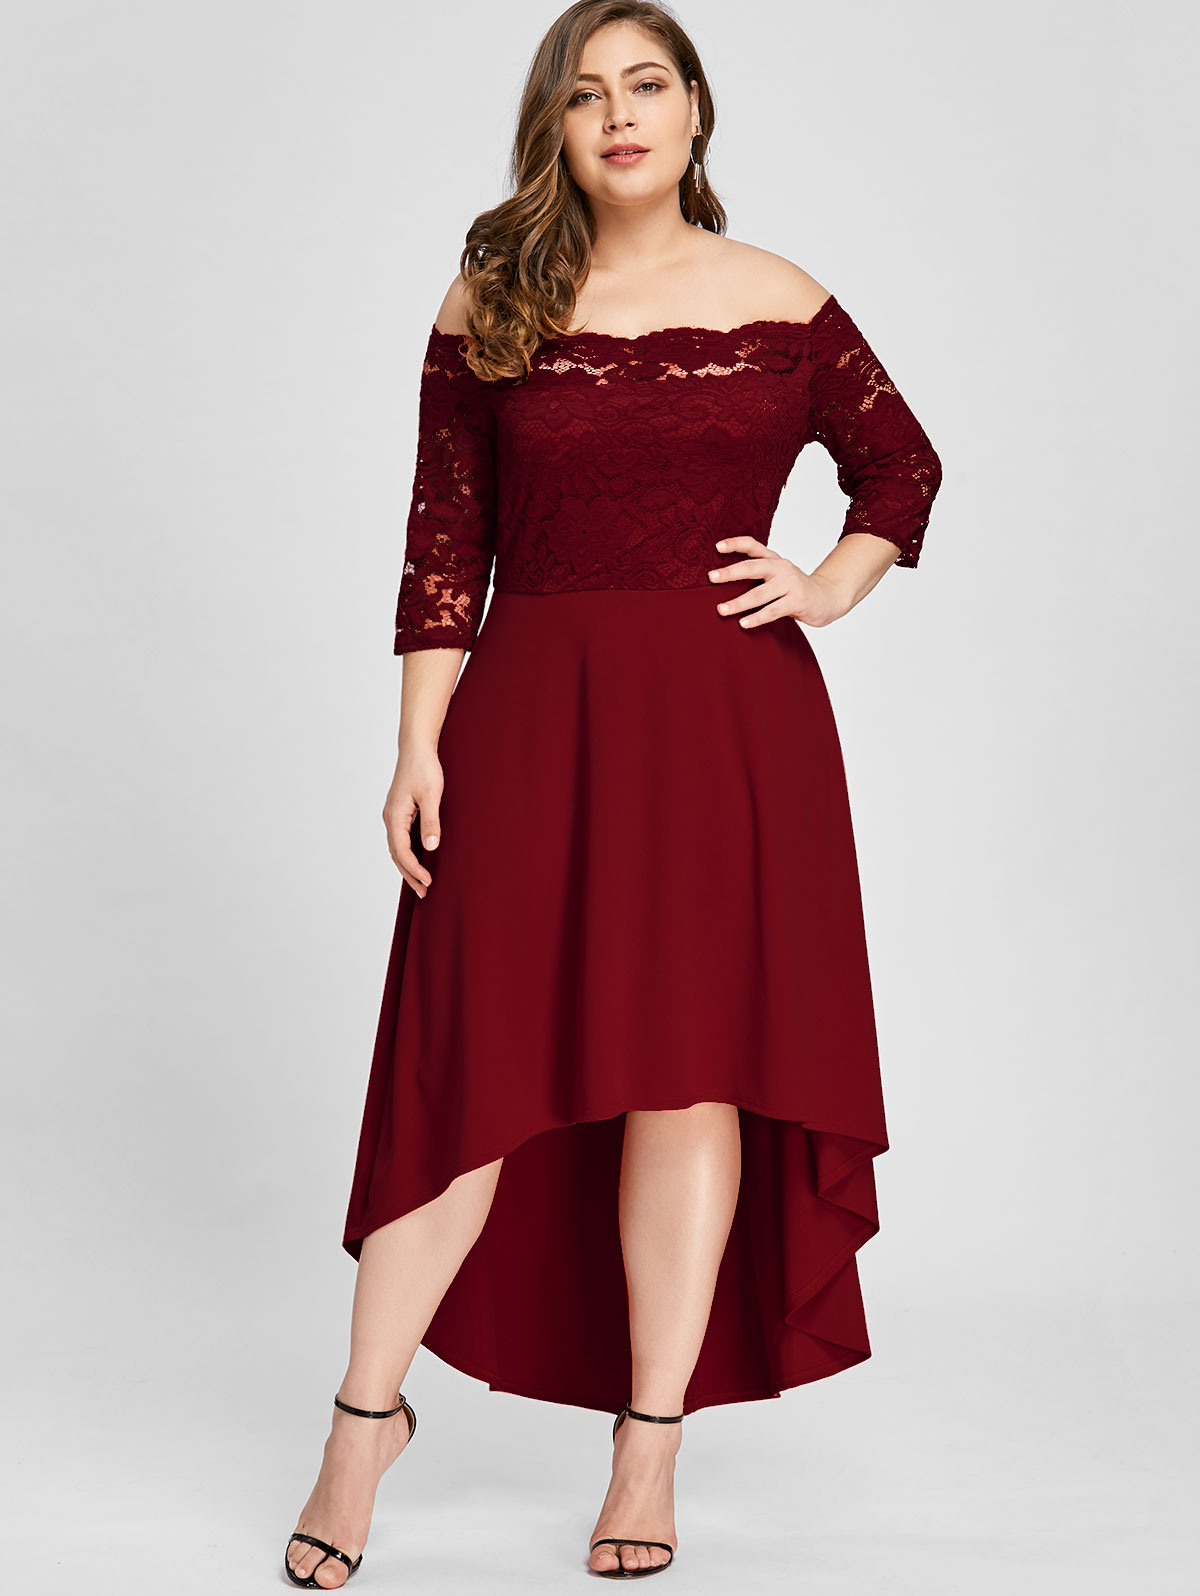 d52bfbb325c Dresses Length  Ankle-Length Neckline  Off The Shoulder Sleeve Length  3 4  Length Sleeves Embellishment  Lace Pattern Type  Solid With Belt  No